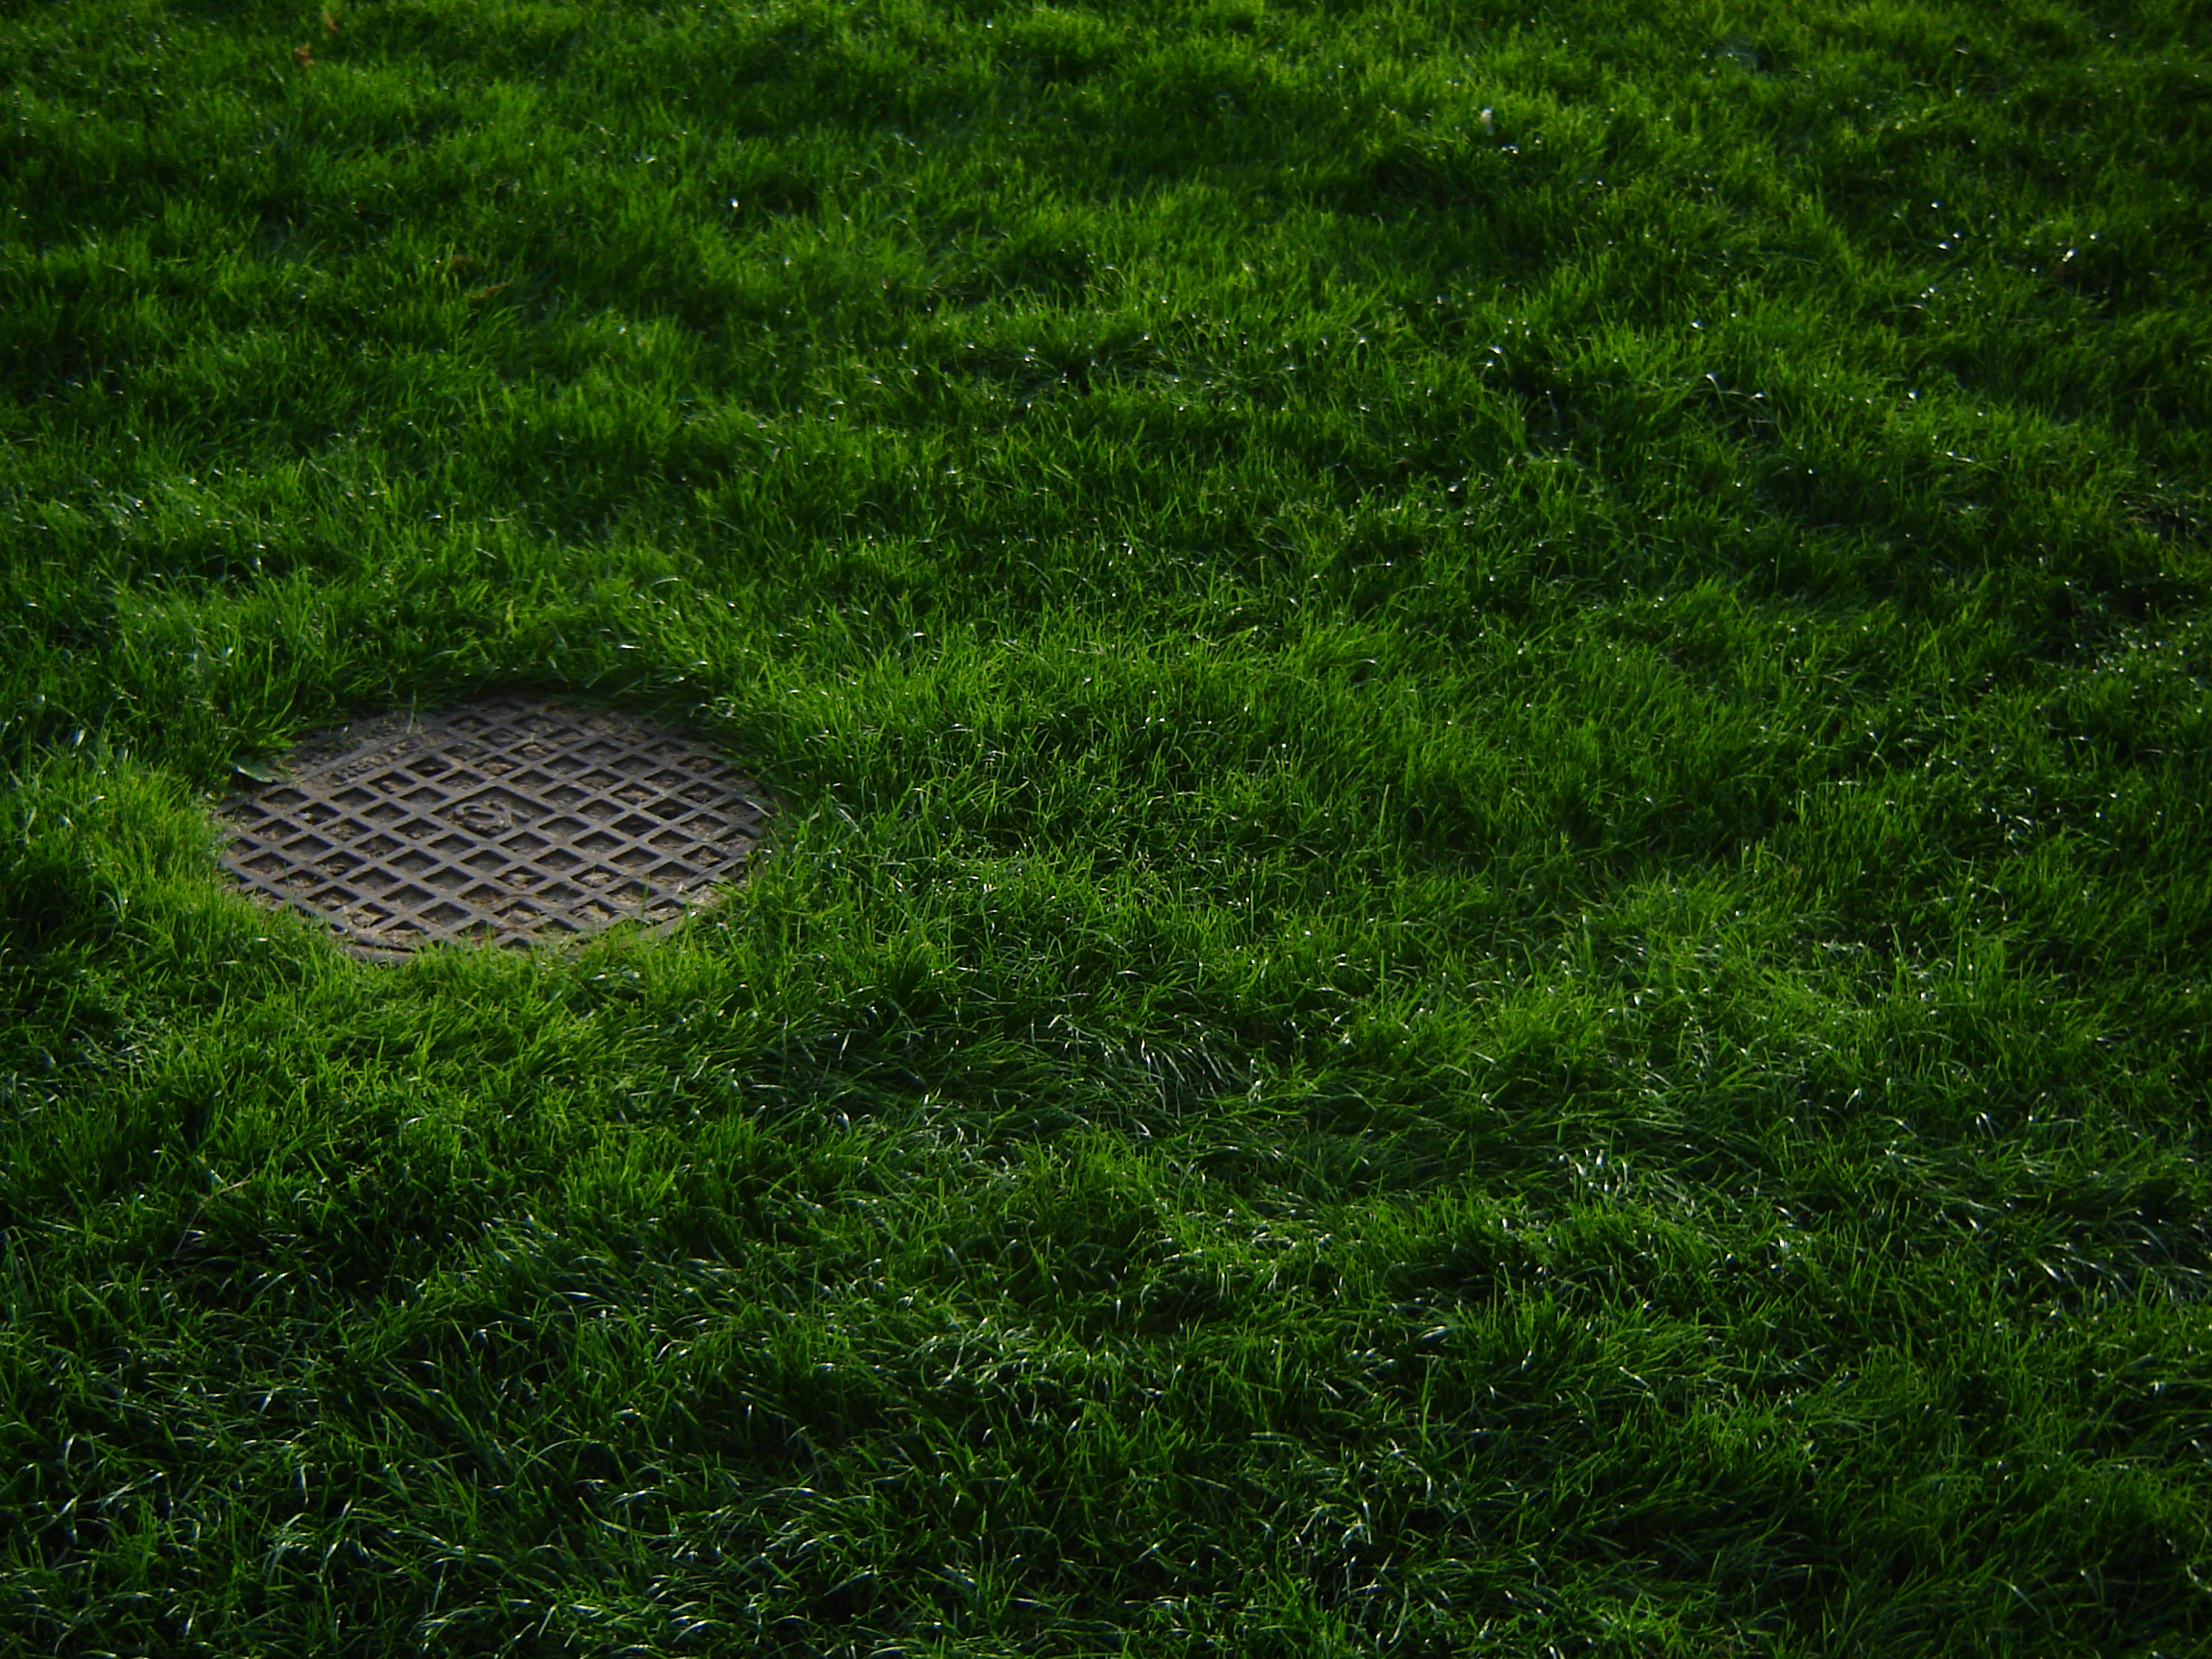 http://upload.wikimedia.org/wikipedia/commons/b/b2/Grass_and_Manhole_Cover.JPG